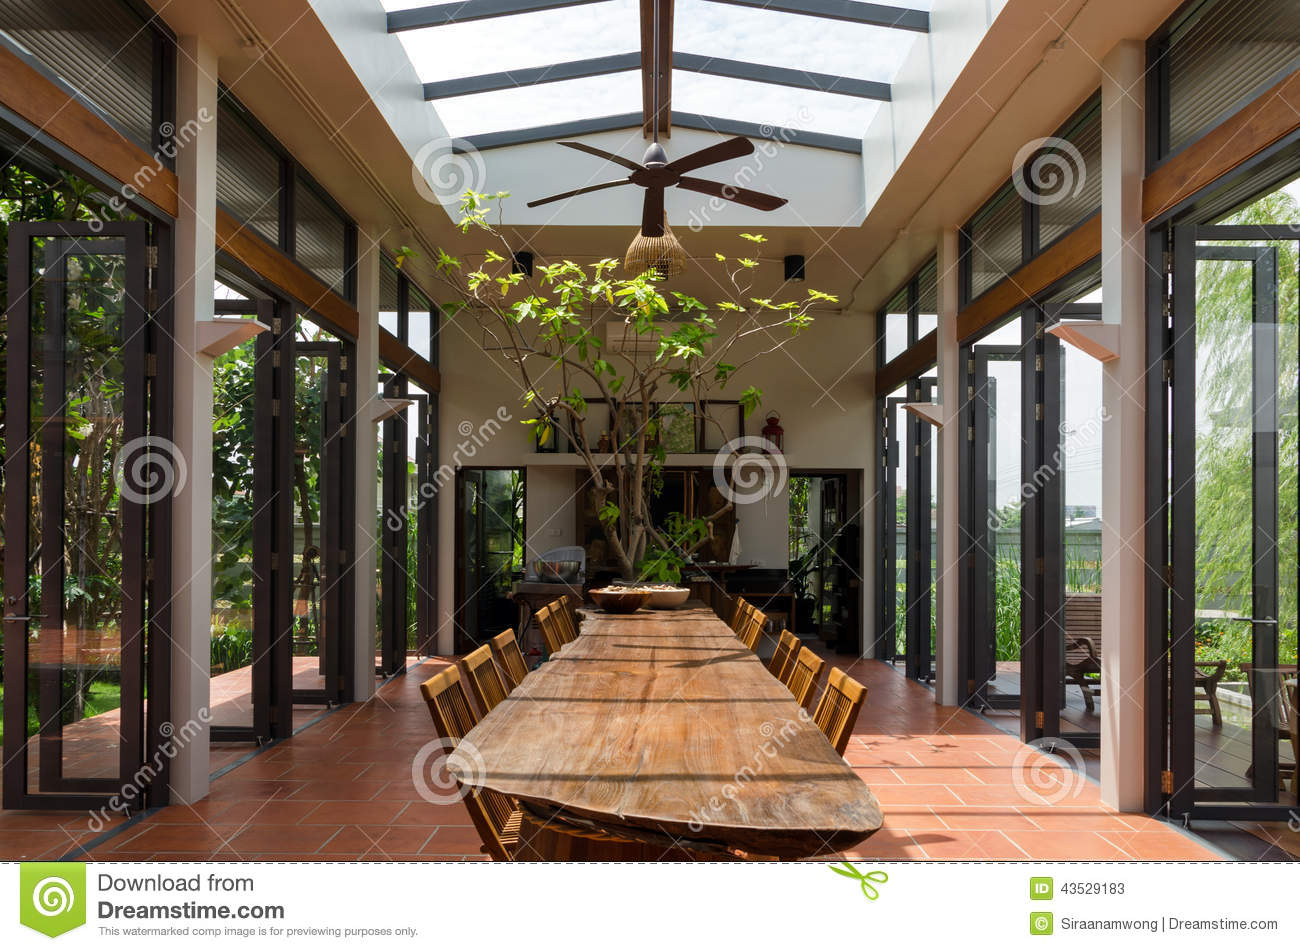 Dining room with skylight stock image. Image of luxury